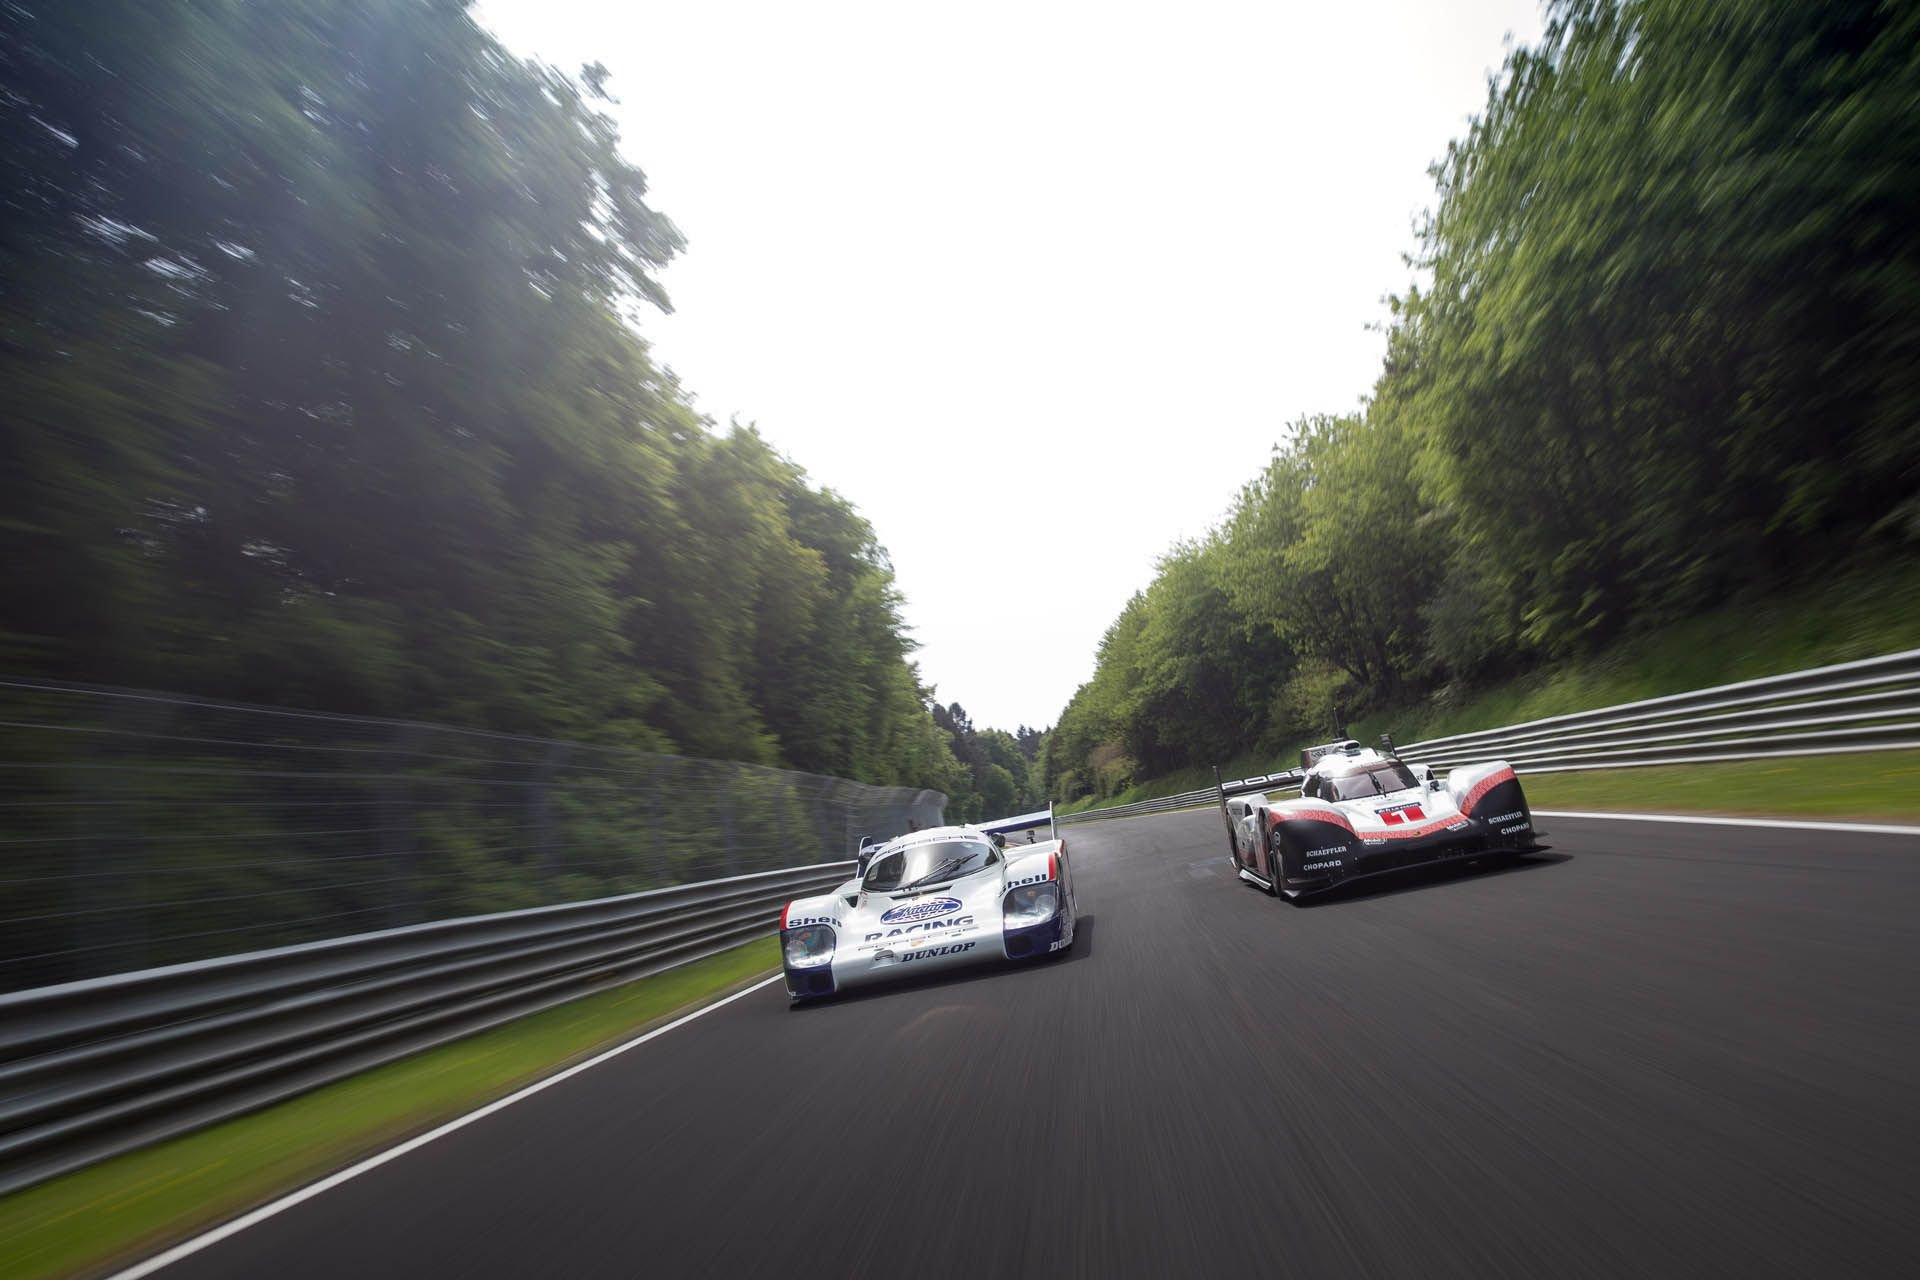 Porsche 919 Hybrid Evo and 956 at Nurburgring (4)